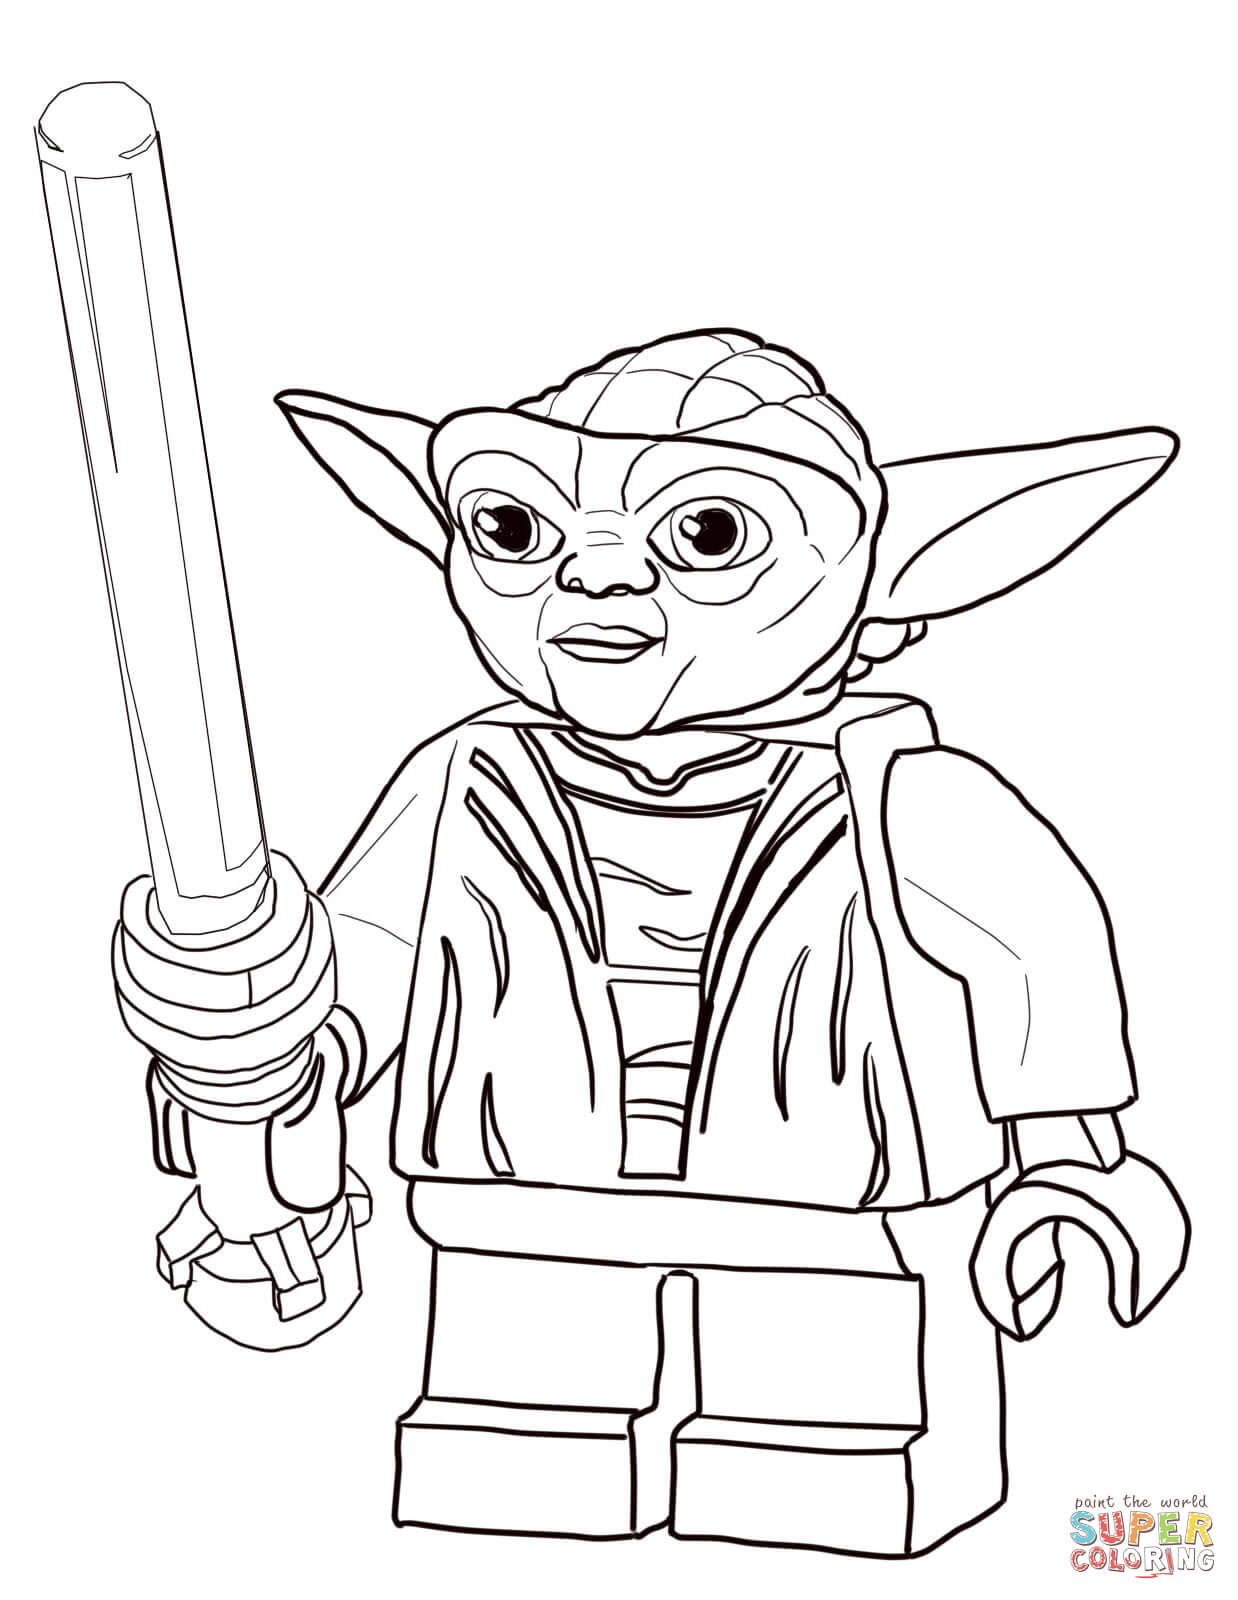 Free coloring pages to print star wars - Star Wars Yoda Coloring Pages